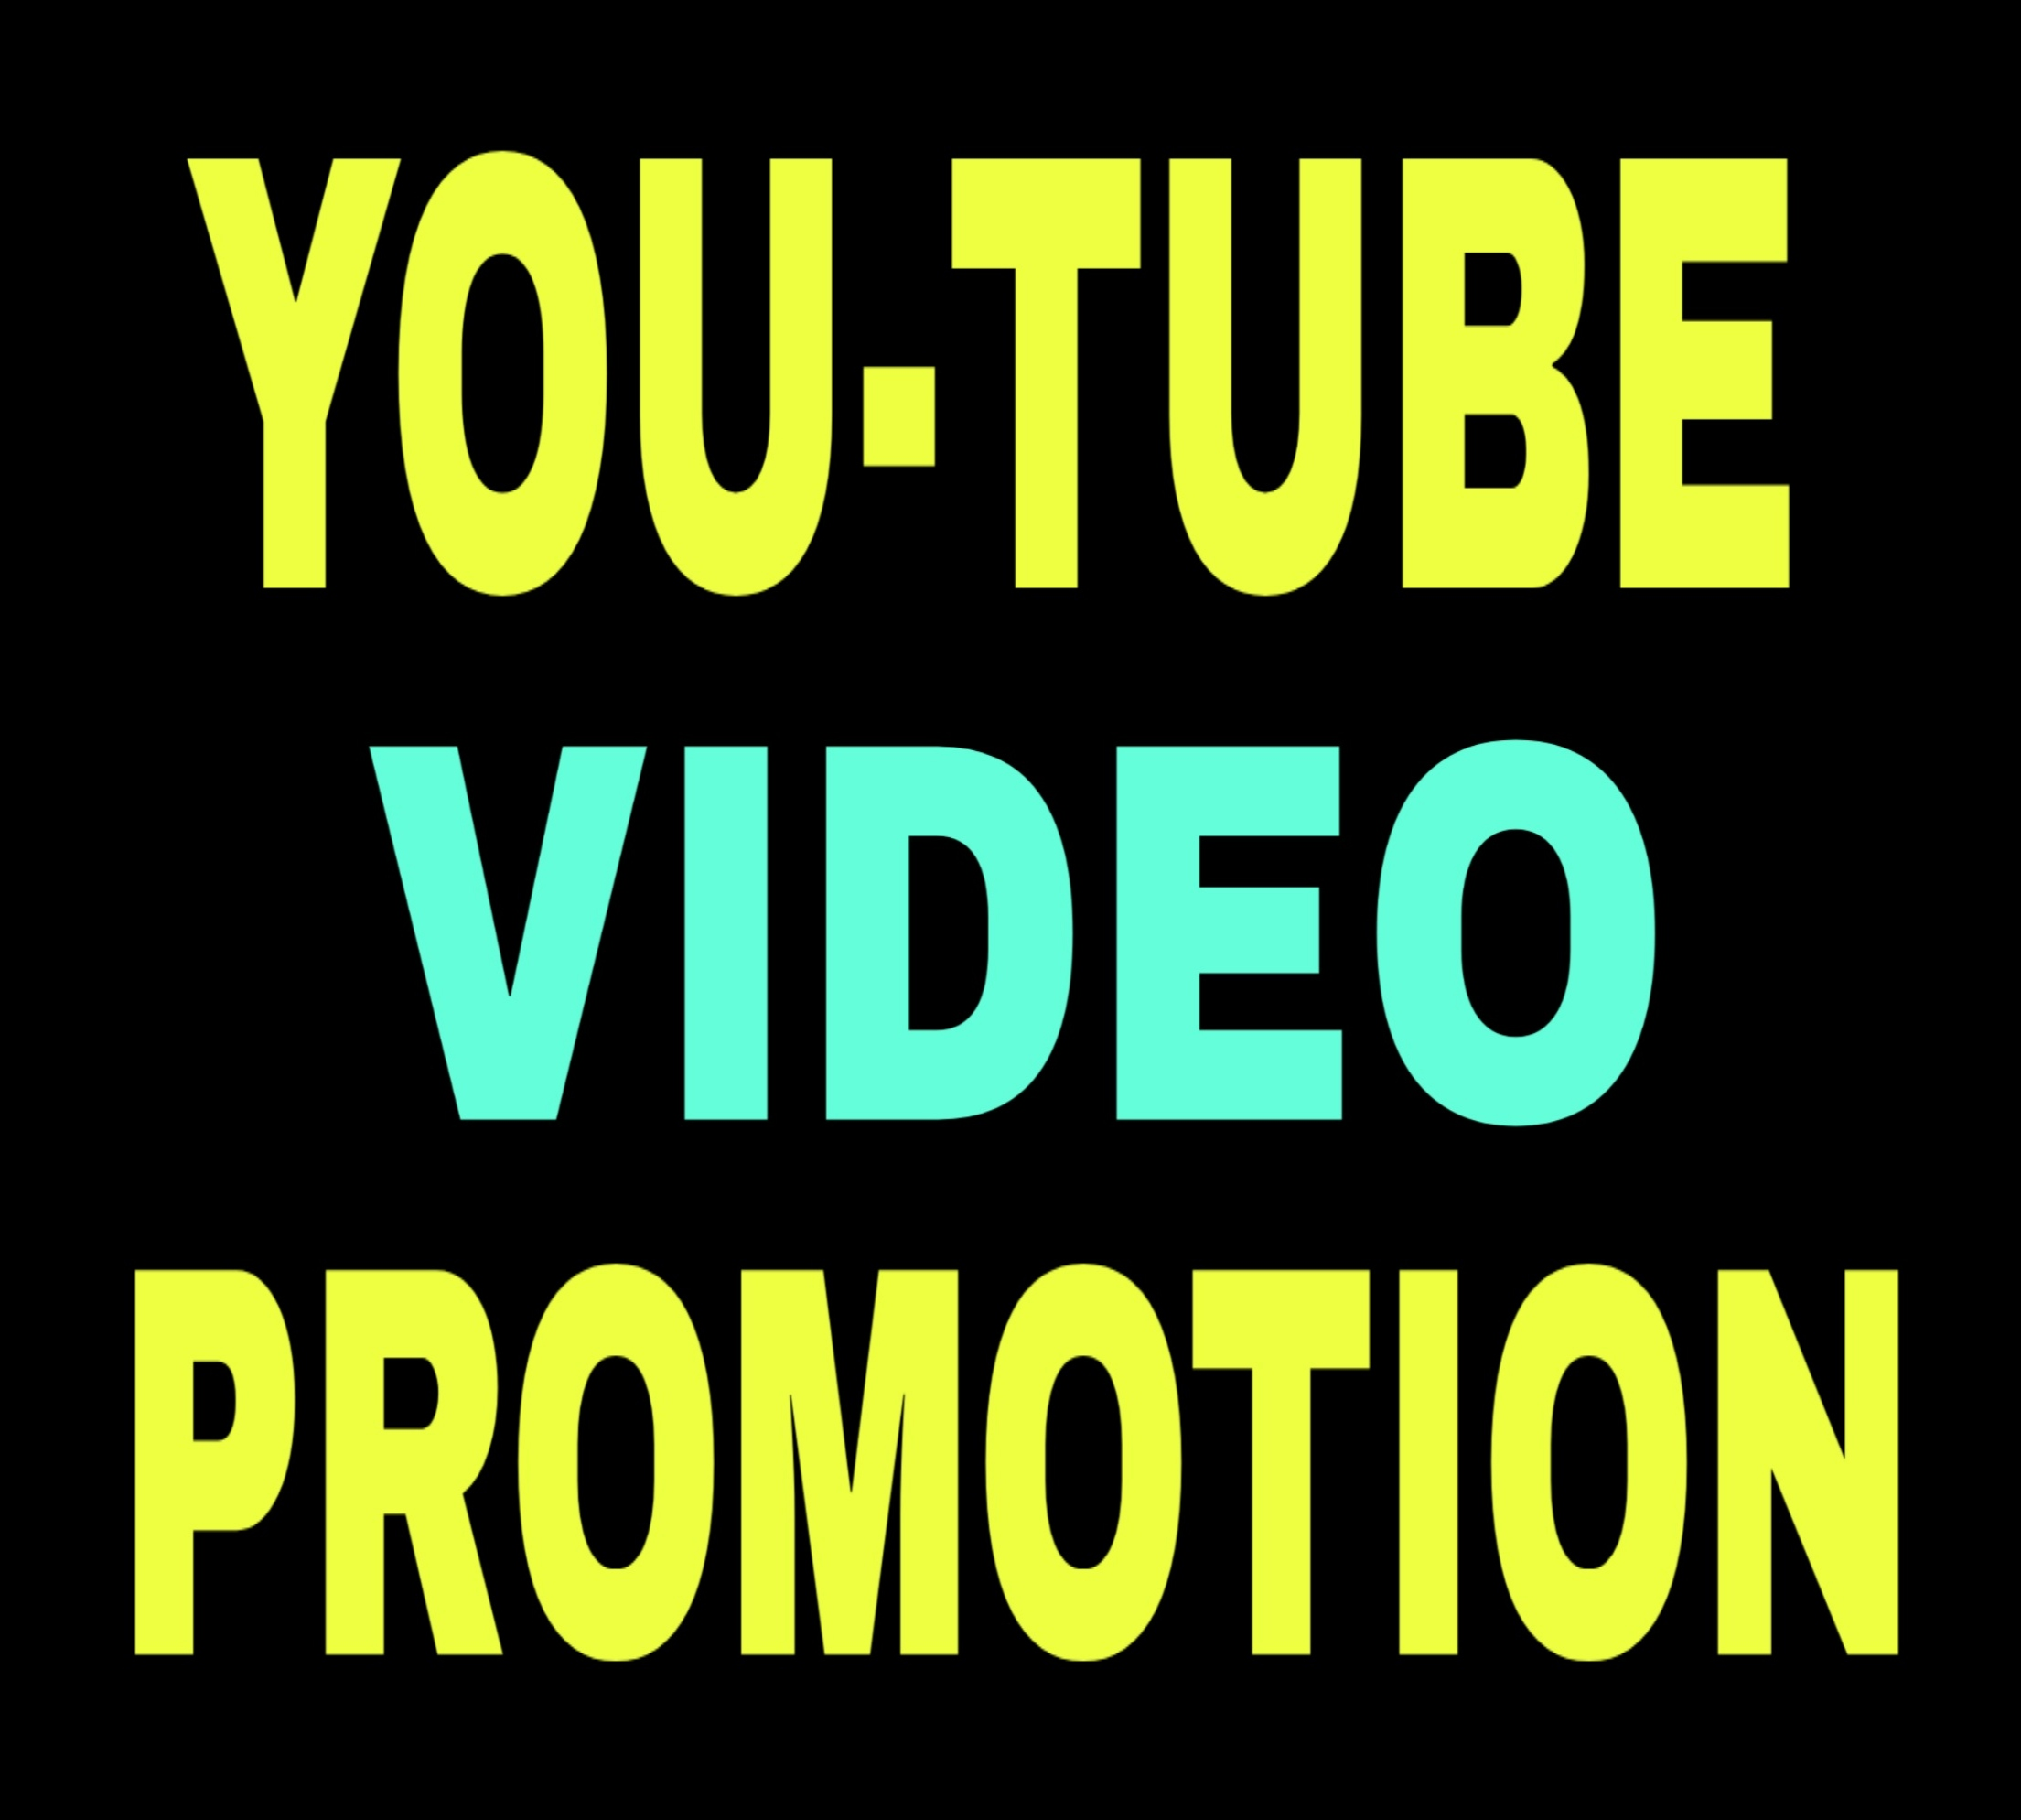 YouTube Video Promotion & Social Media Marketing Very Fast Completed